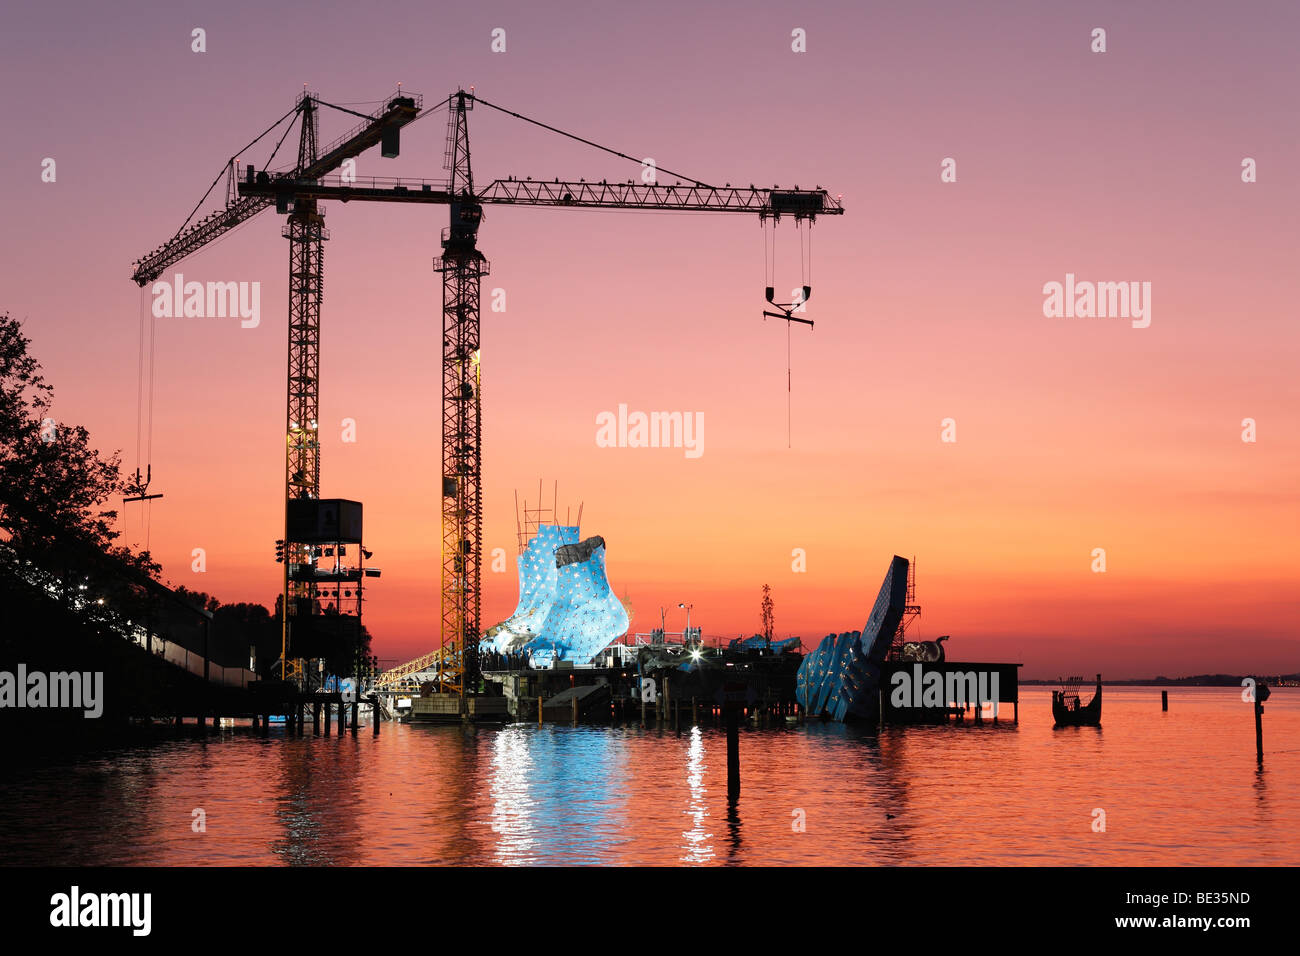 Stage for the opera Aida, Seebuehne Bregenz floating stage, Bregenzer Festspiele Festival, Lake Constance, Vorarlberg, - Stock Image